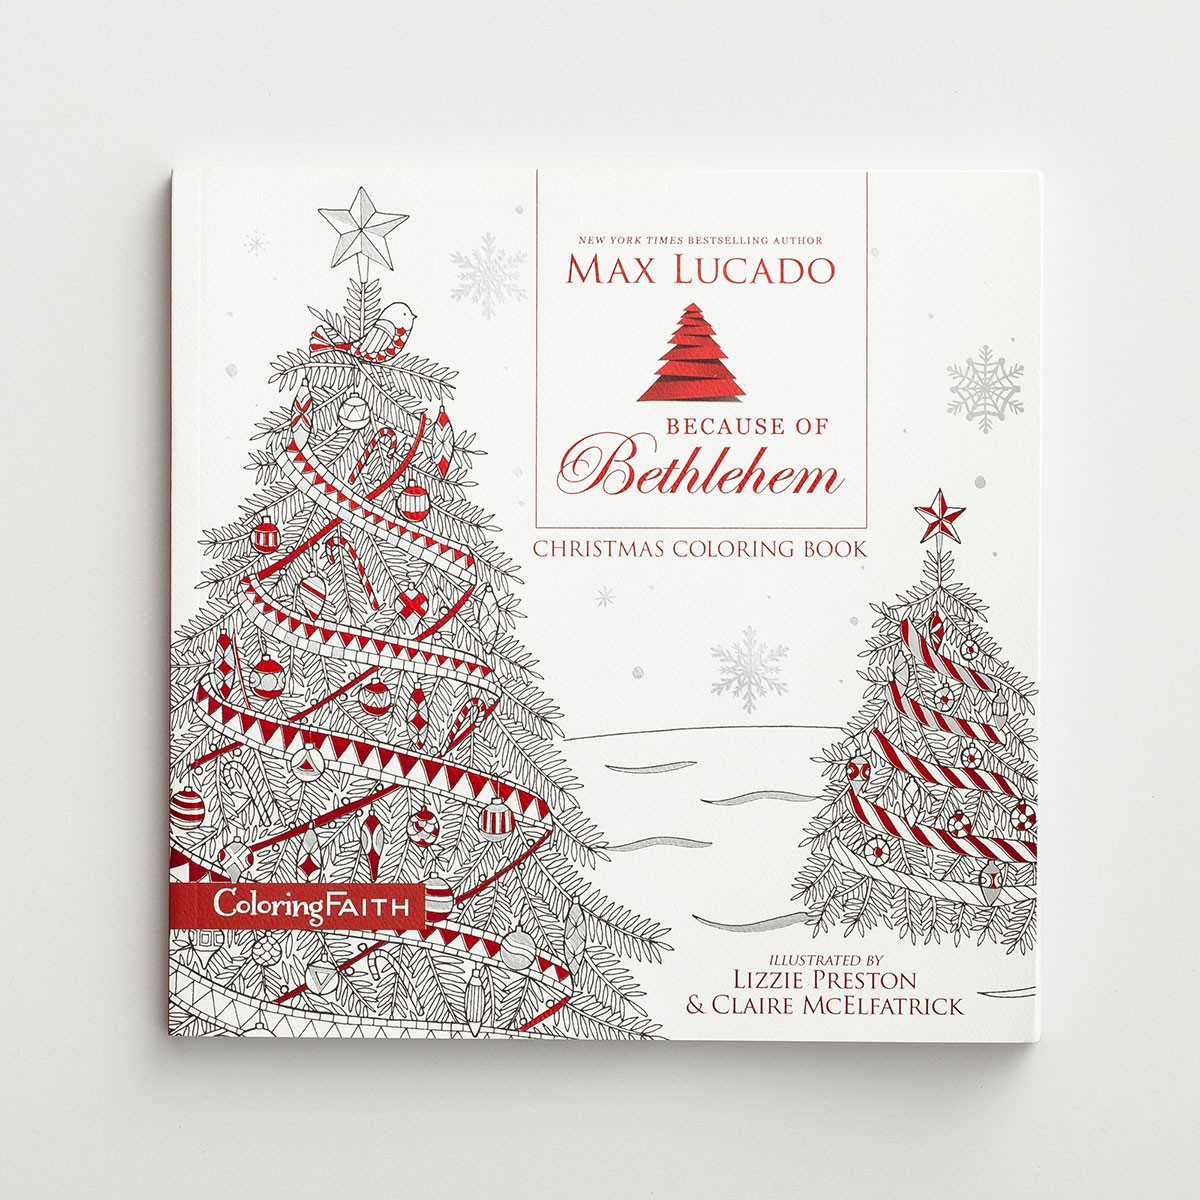 Christmas Coloring Book Pictures With Max Lucado Because Of Bethlehem DaySpring